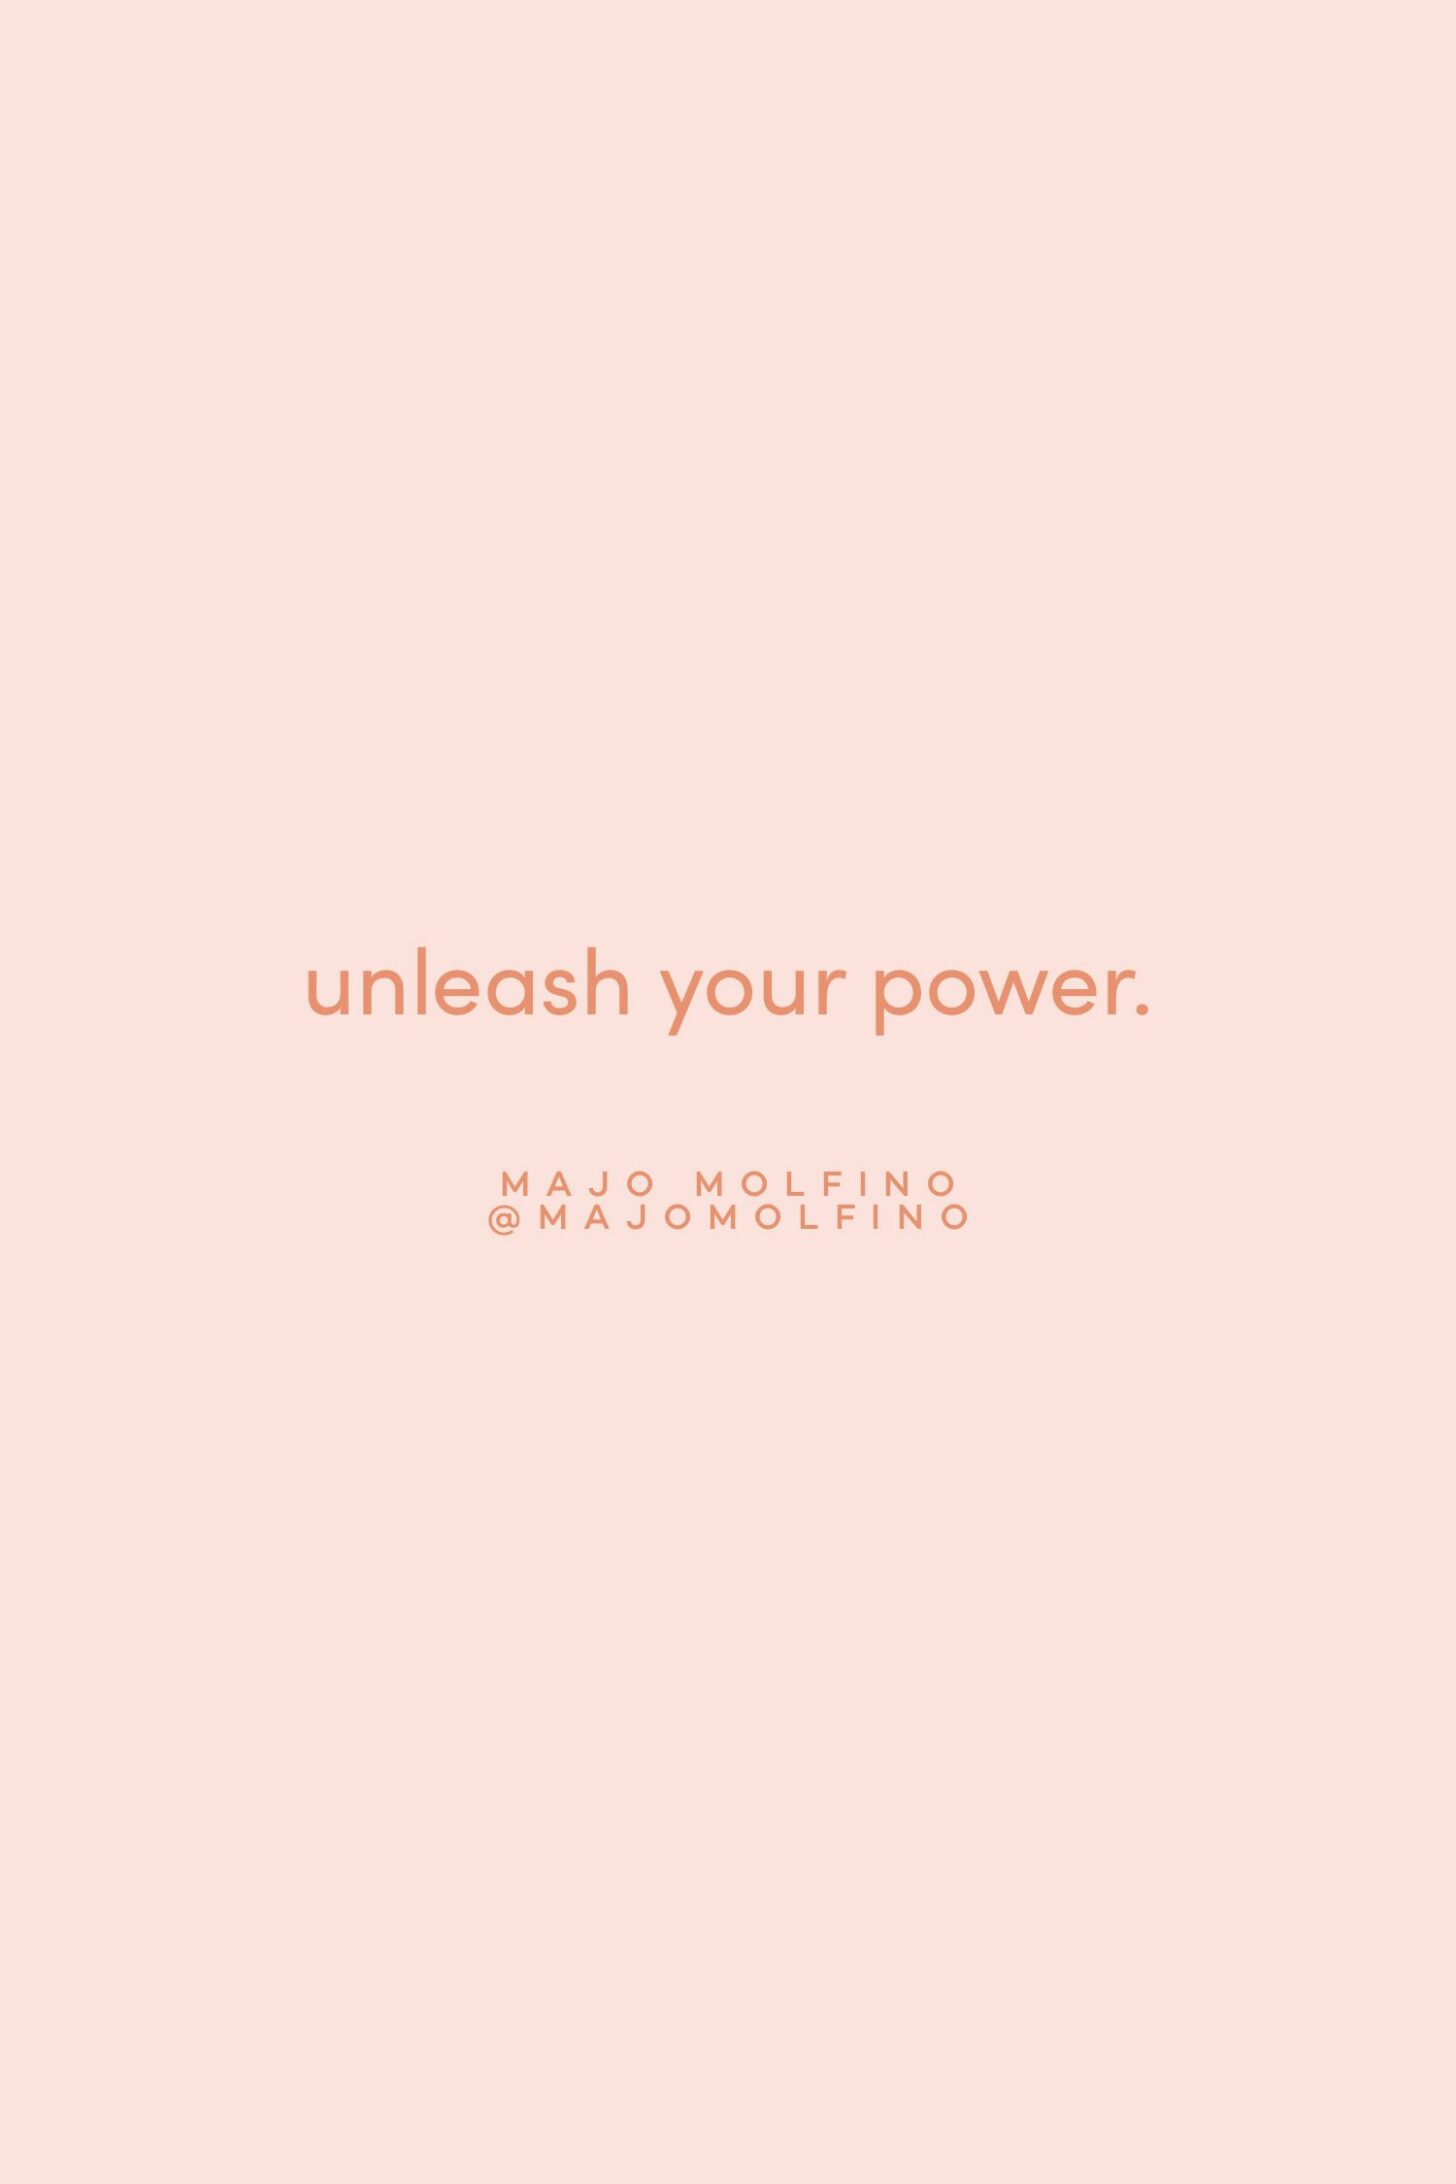 Quote on unleashing your power by Majo Molfino on the Feel Good Effect Podcast #realfoodwholelife #feelgoodeffectpodcast #motivationalquote #positivityquote #inspirationalquote #growthquote #powerquote